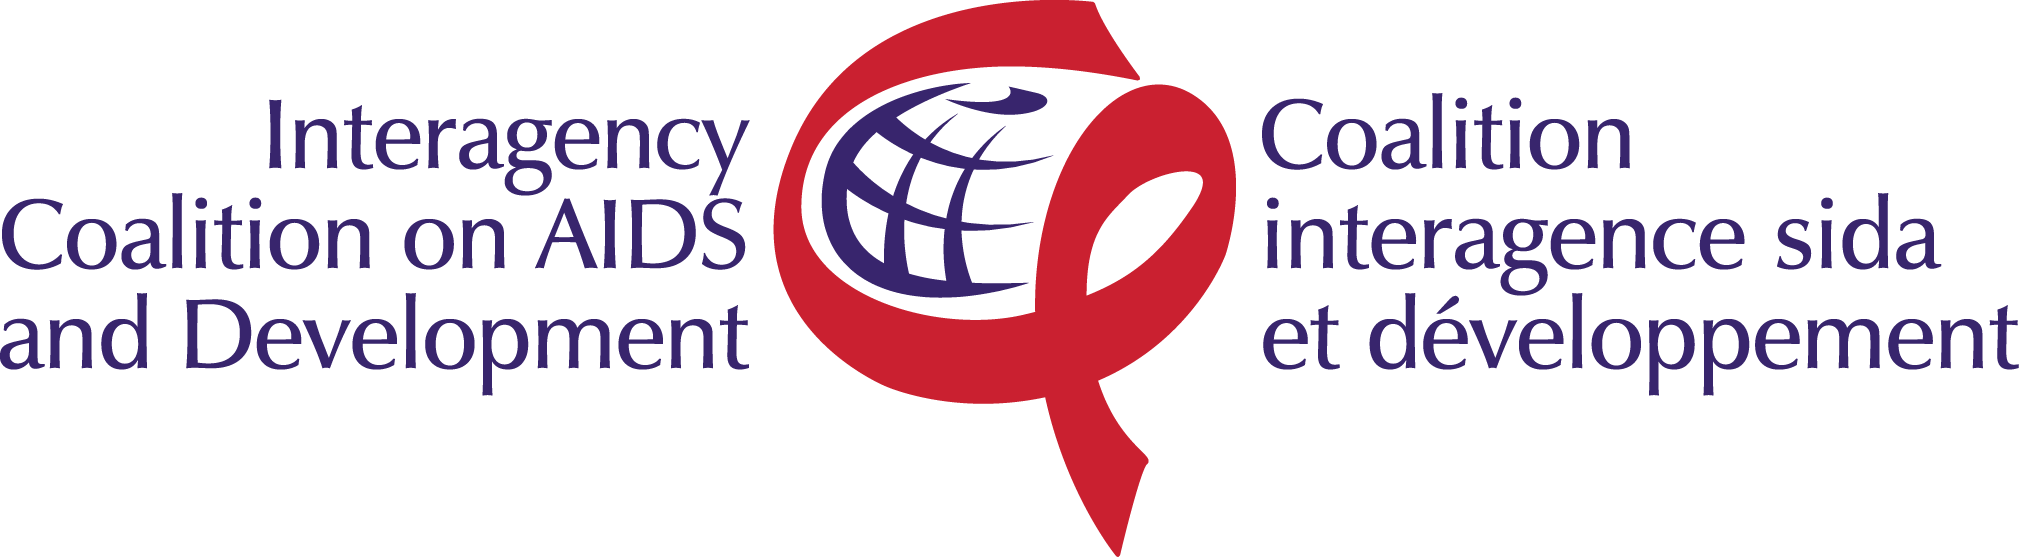 Interagency Coalition on AIDS and Development (ICAD) - Logo